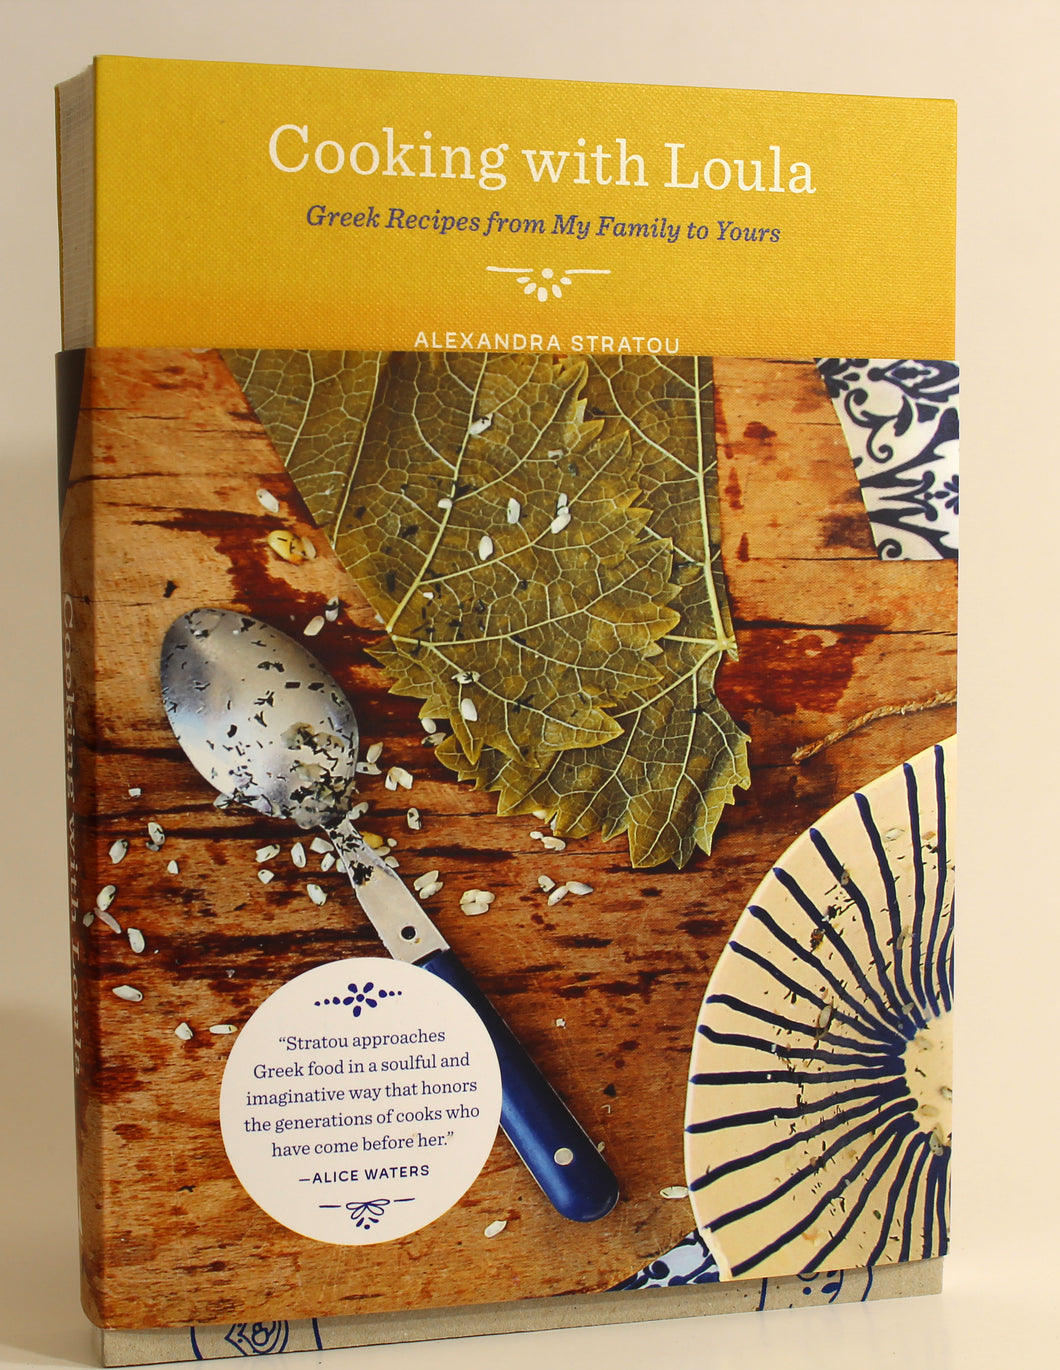 Cooking with Loula by Alexandra Stratou